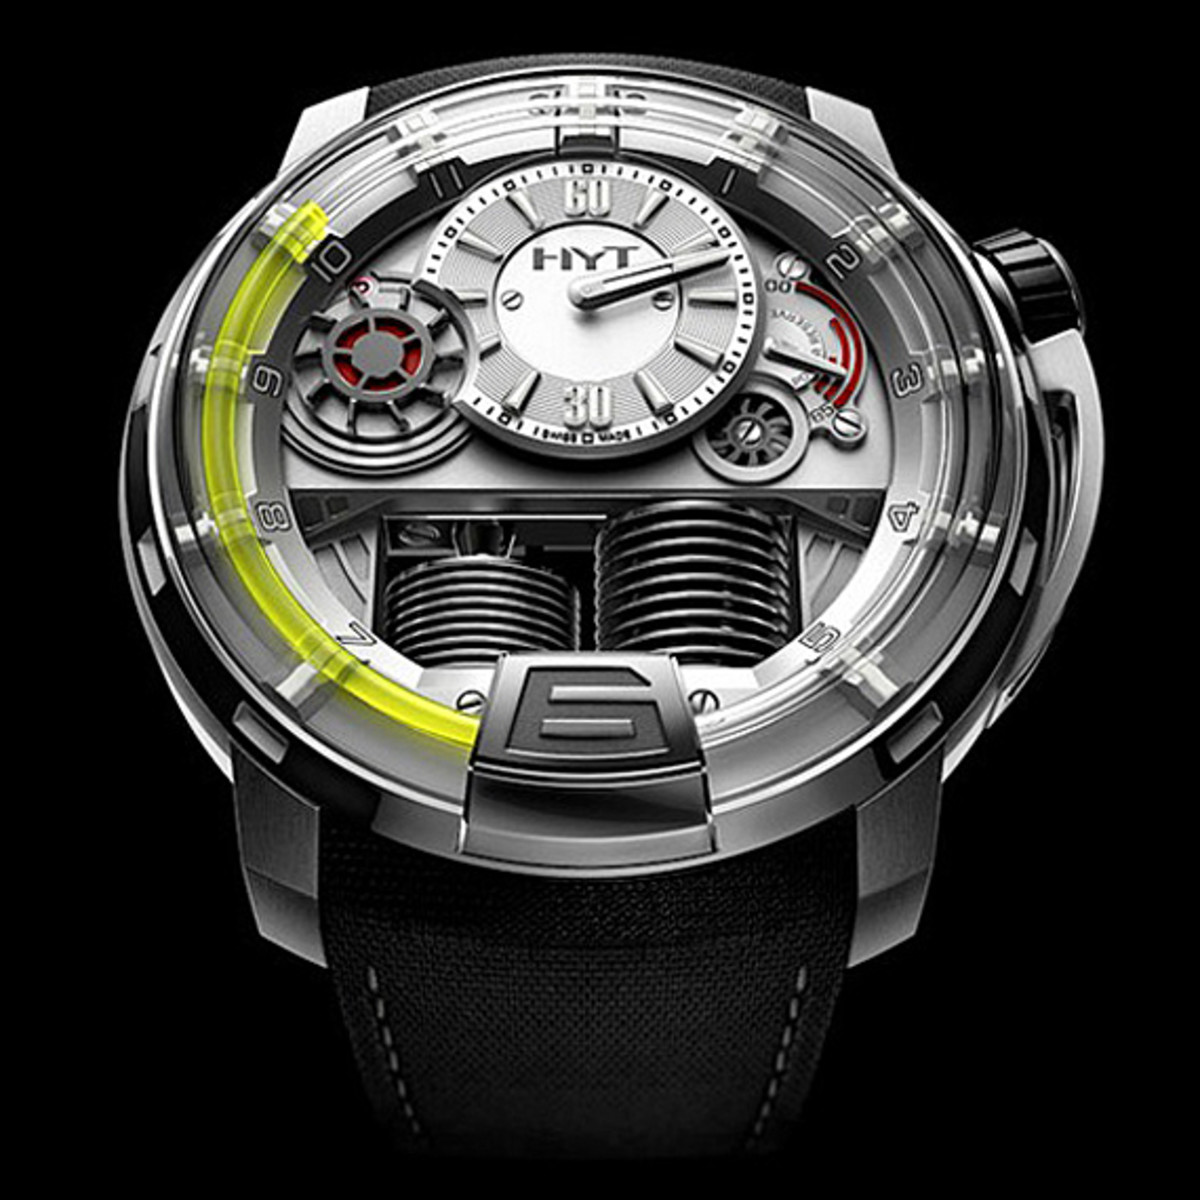 hyt-hydro-mechanical-horologists-h1-01